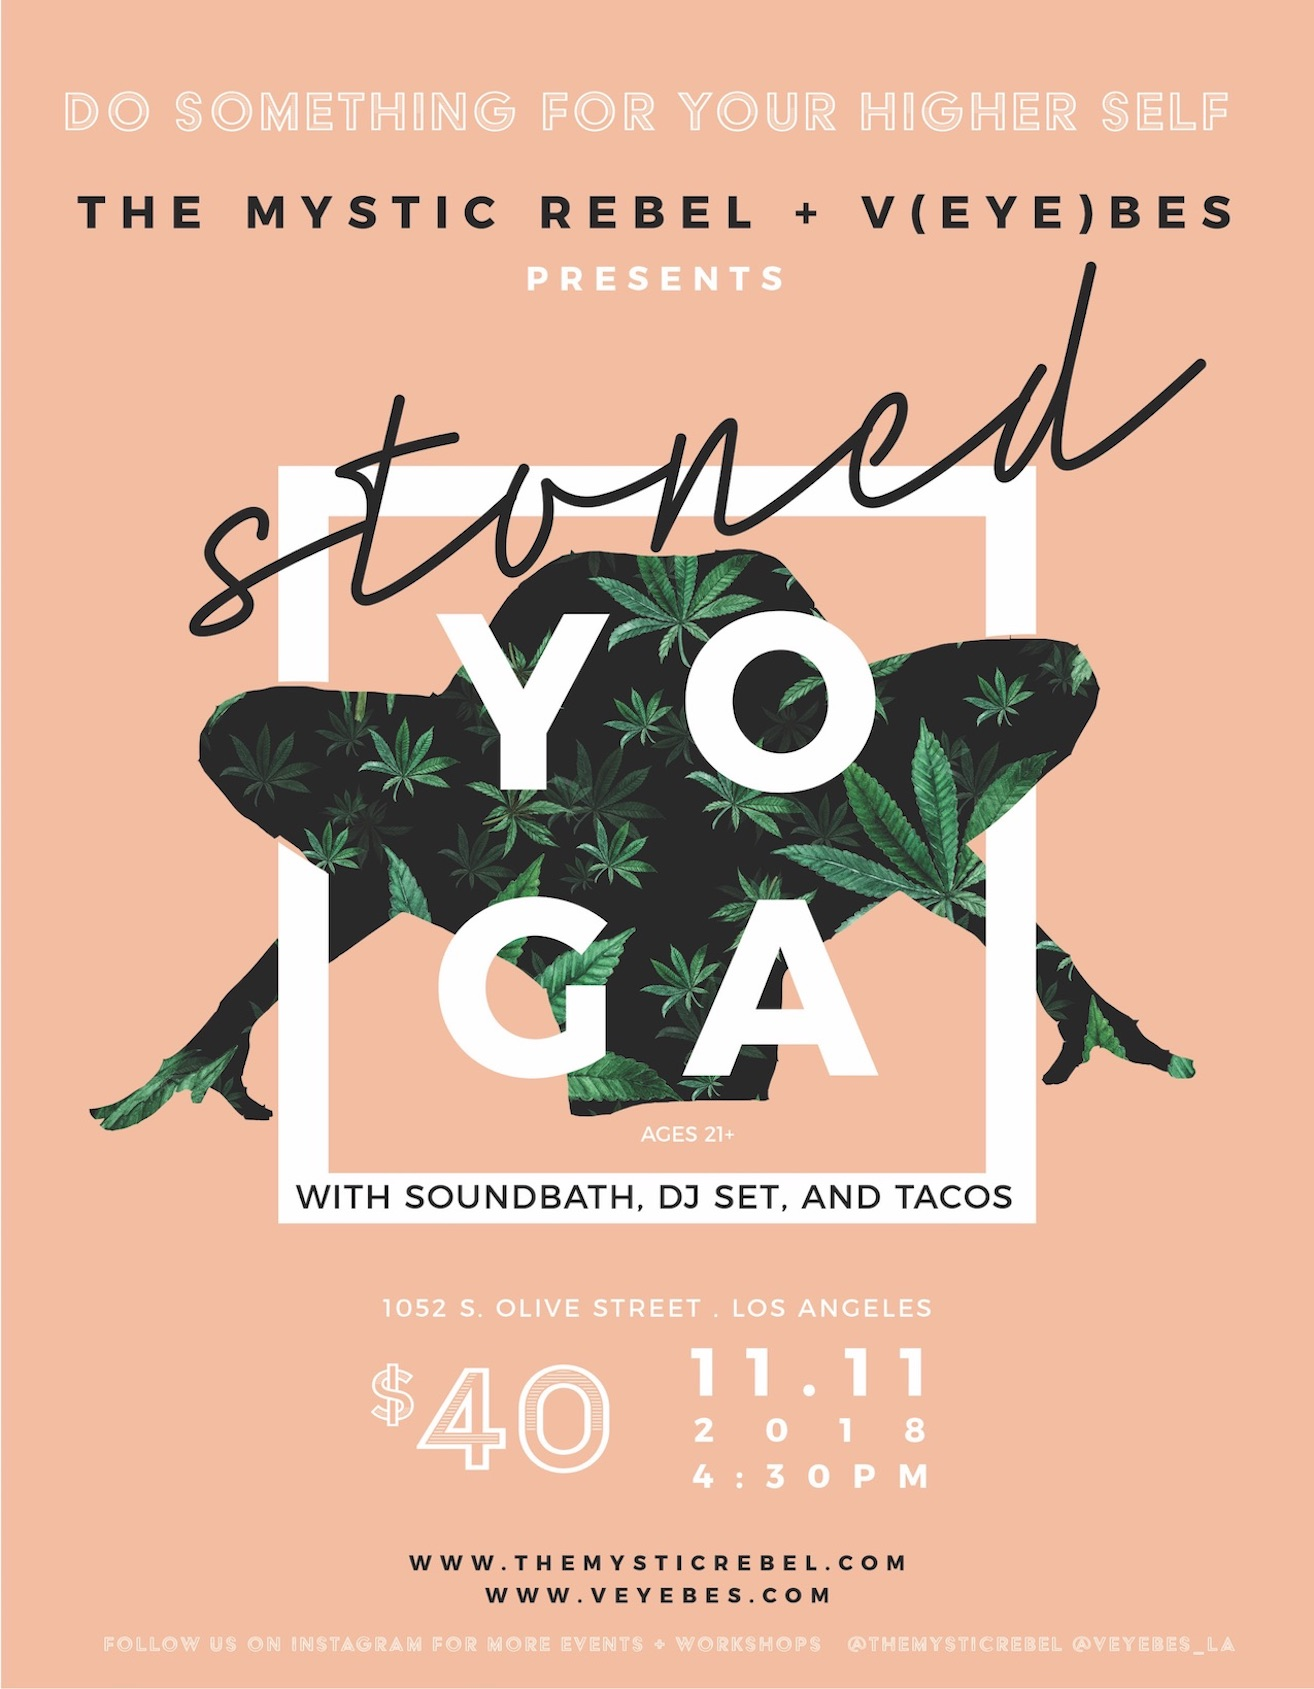 Stoned Yoga x Soundbath